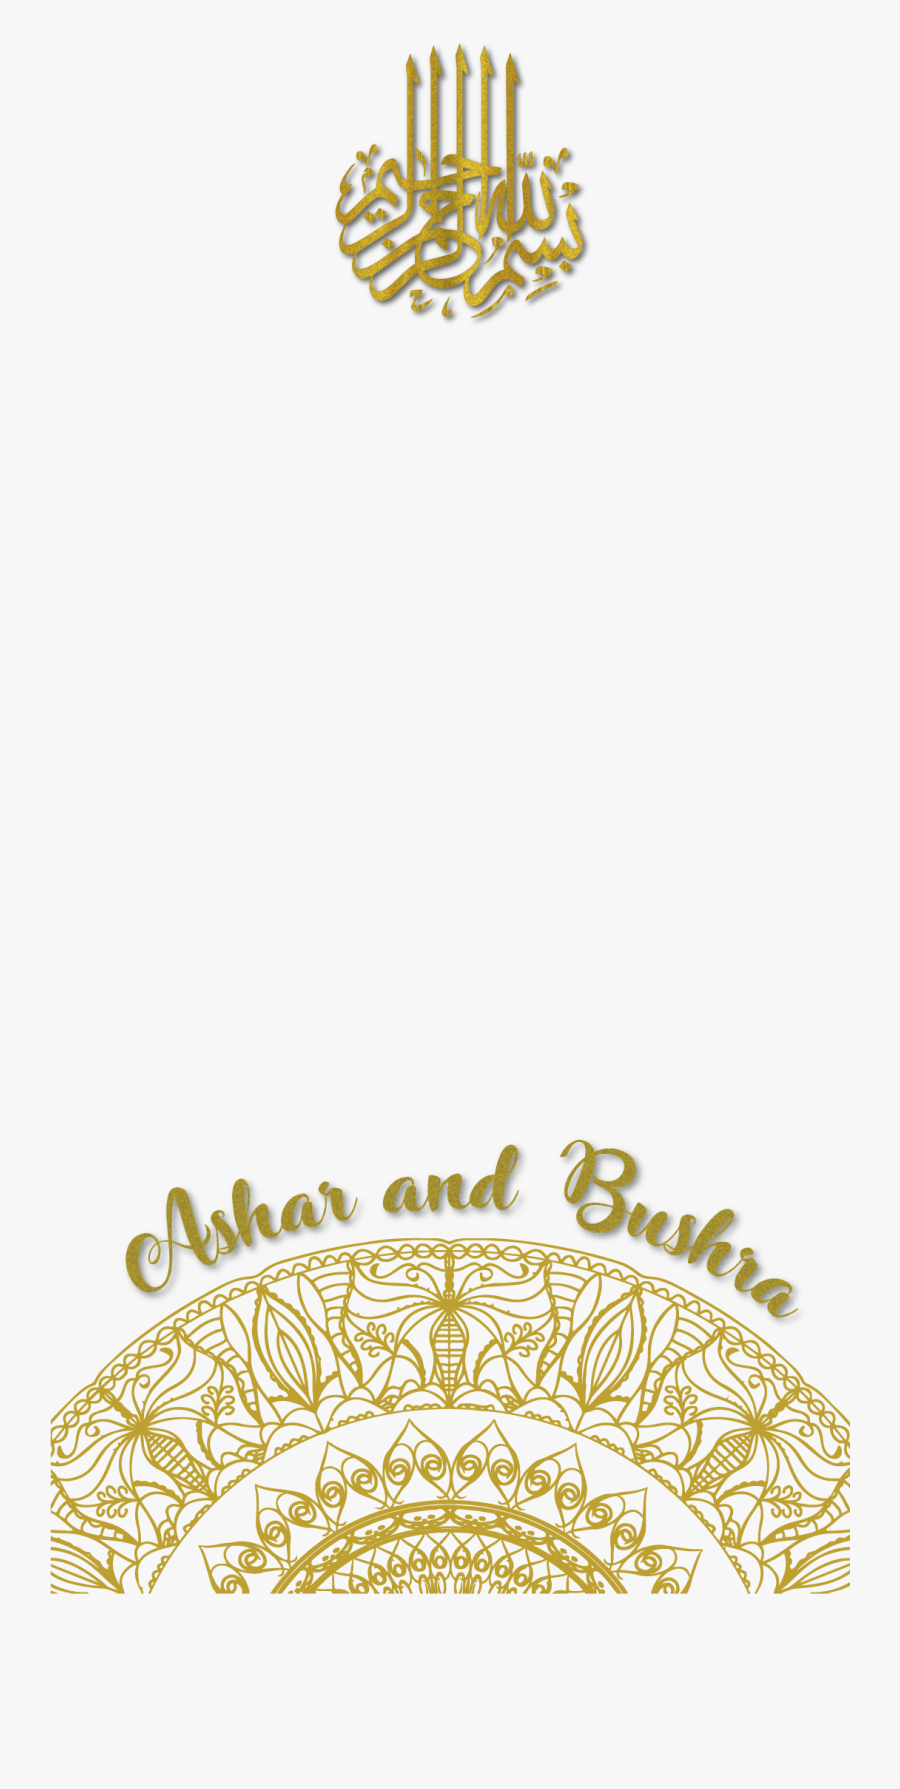 Snapchat Wedding Filter Png , Free Transparent Clipart.